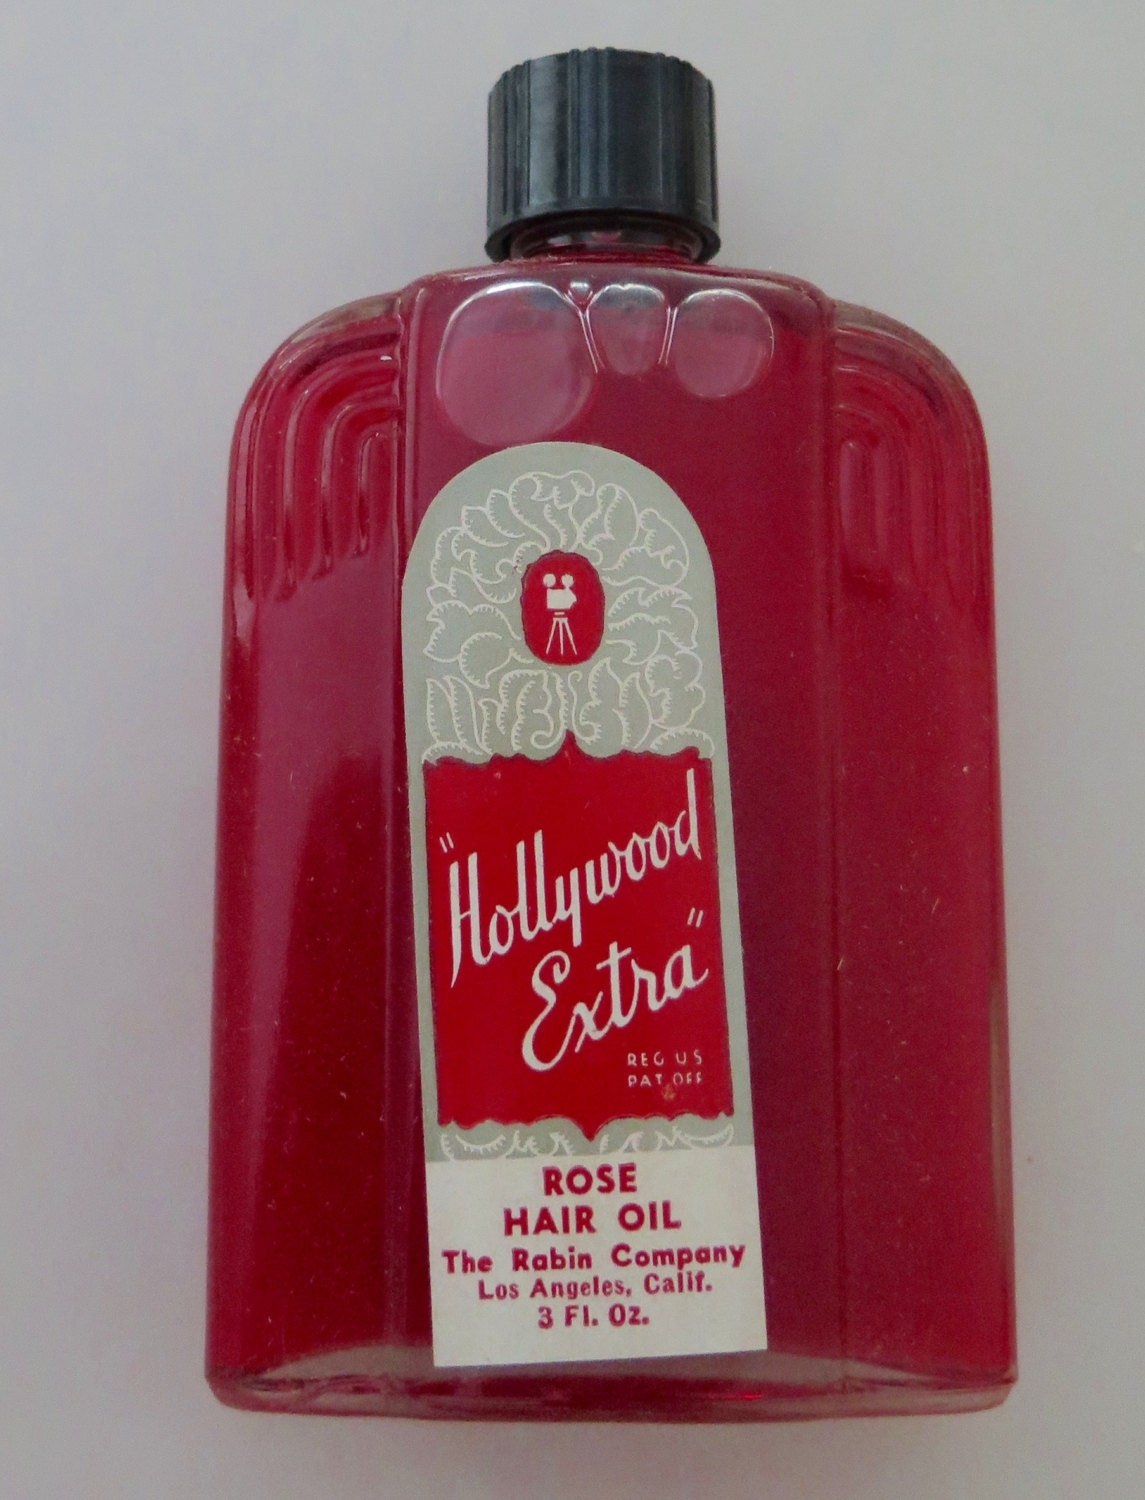 Vintage Hollywood Extra Rose Hair Oil Art Deco Bottle Etsy